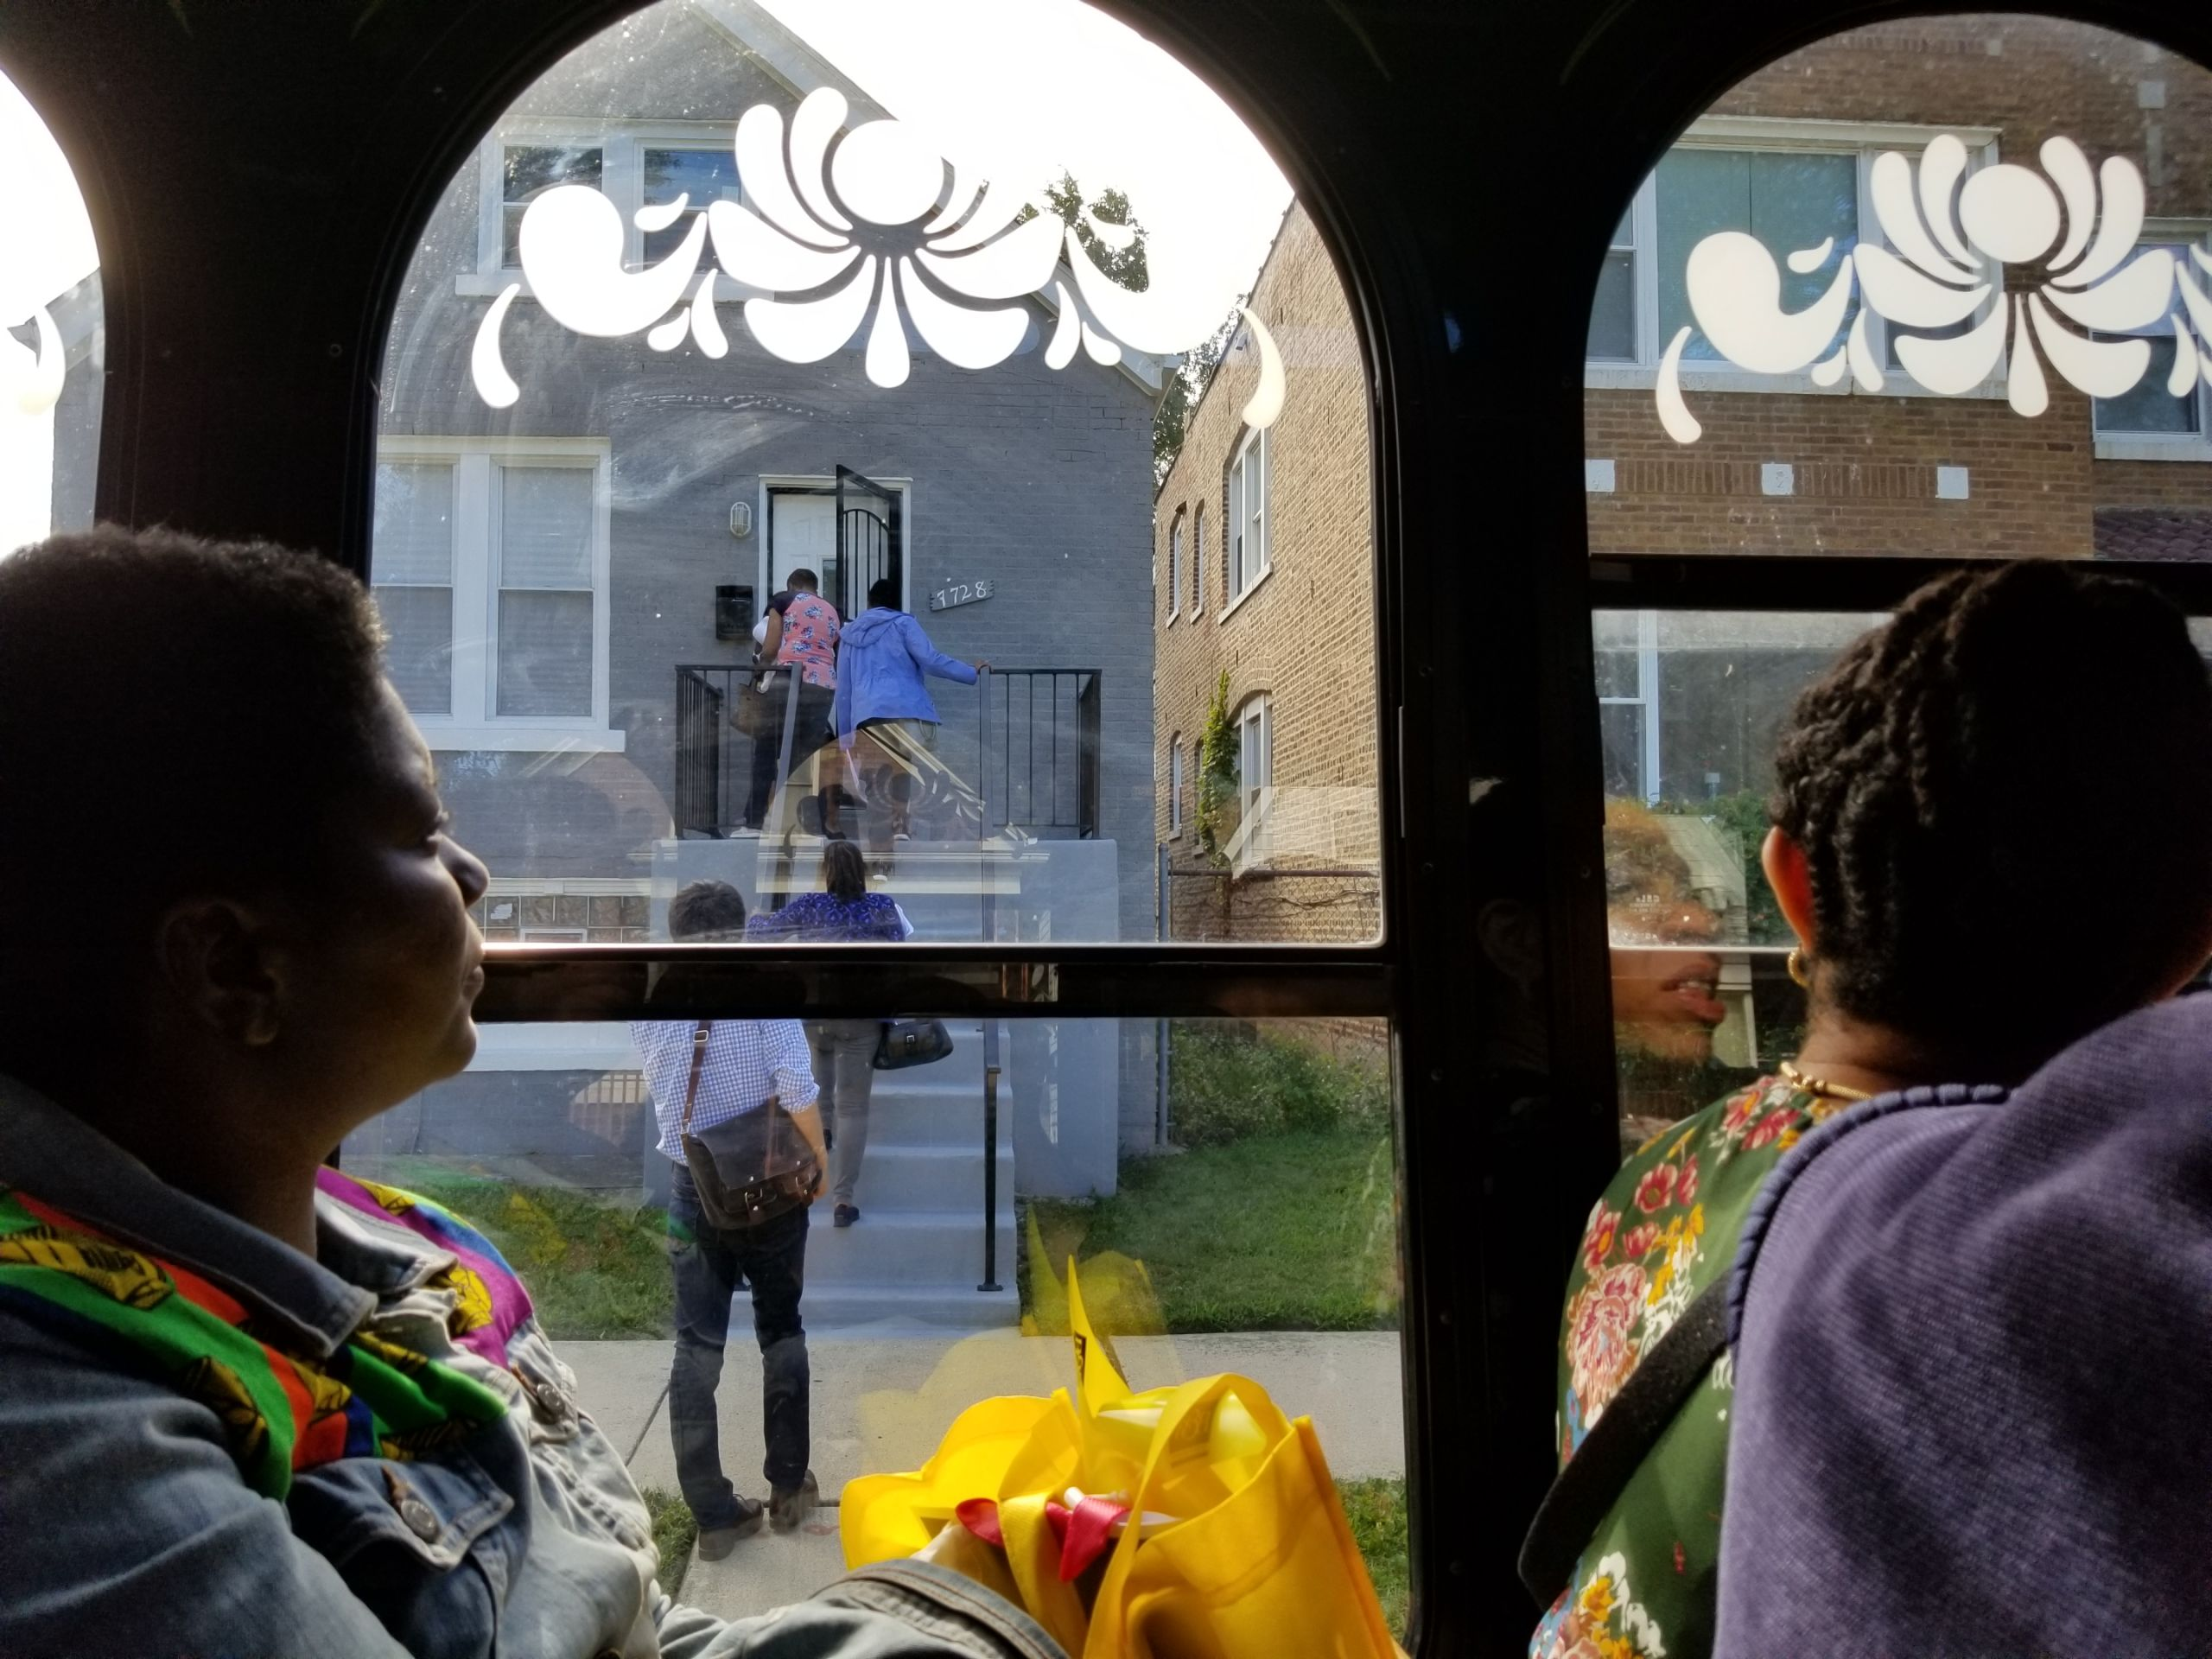 Through a the window of a trolley, the image shows people filing into a home in Chatham to look inside. Inside the trolley, others look at the house out of teh window.